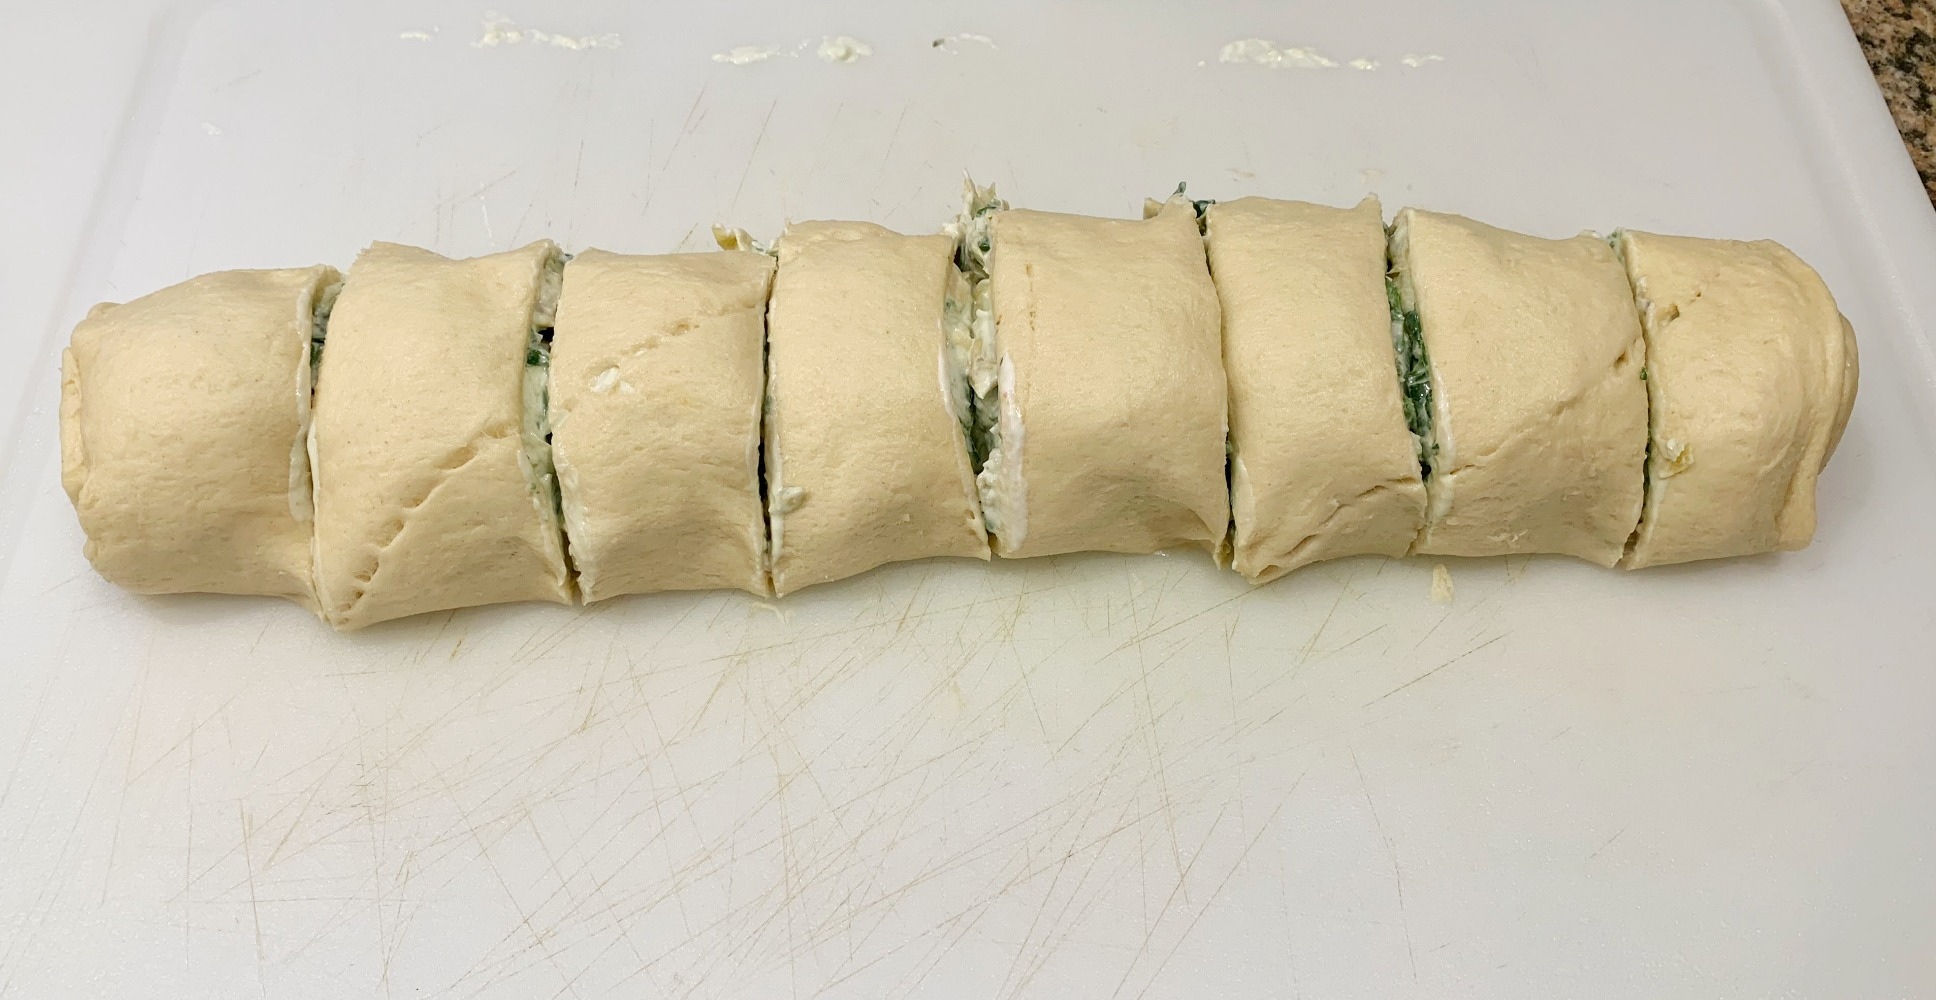 the crescent roll is rolled up with the dip inside it and cut into 8 pieces.